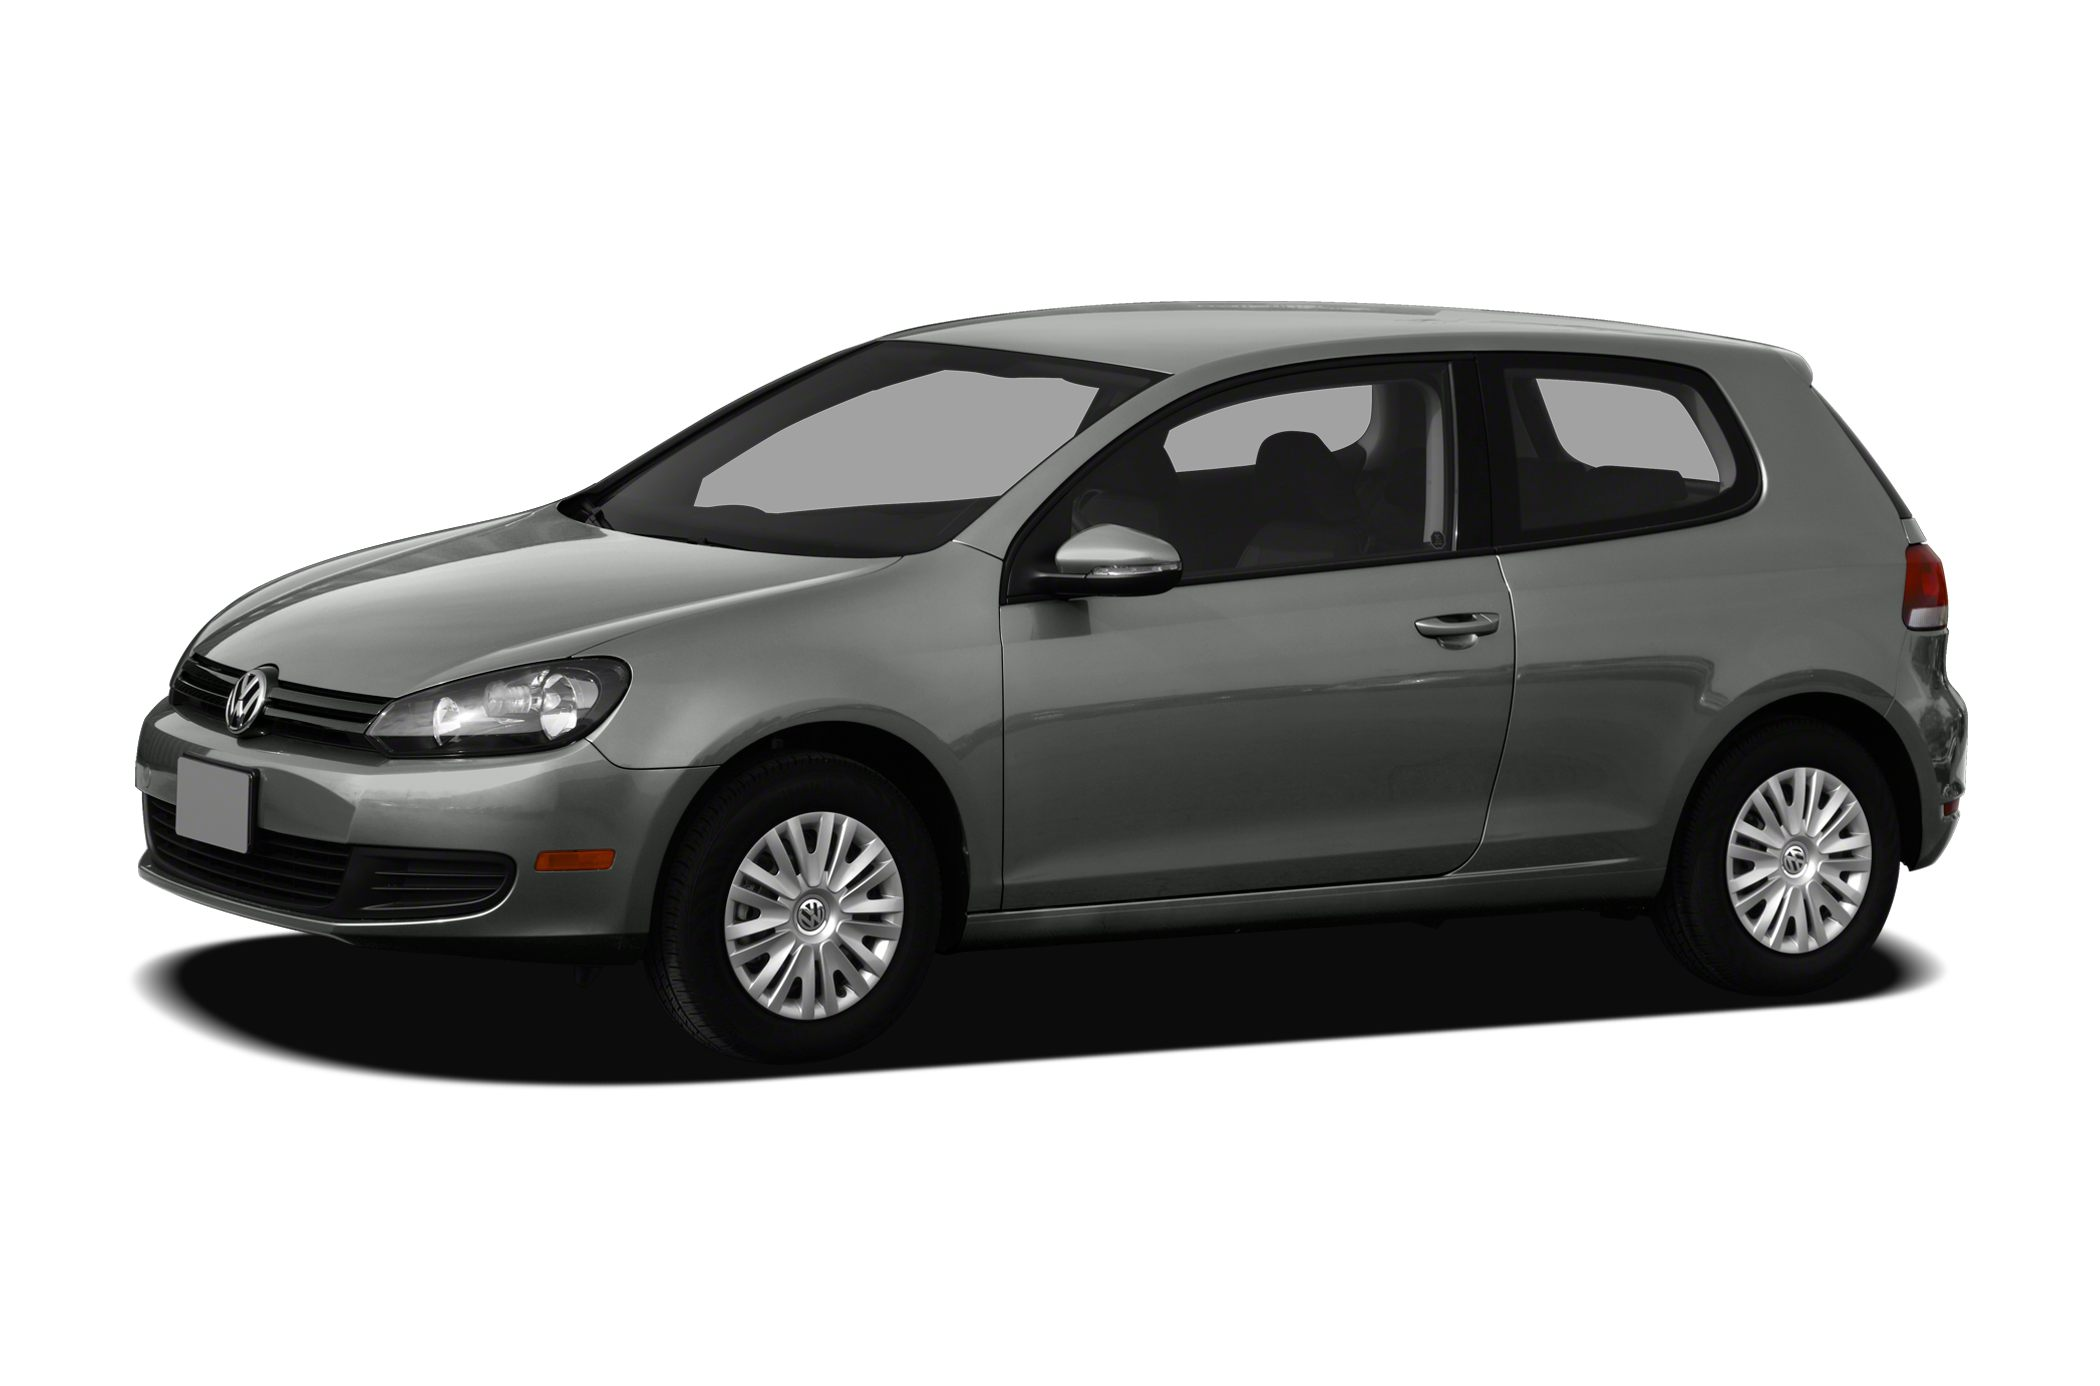 2012 Volkswagen Golf Information